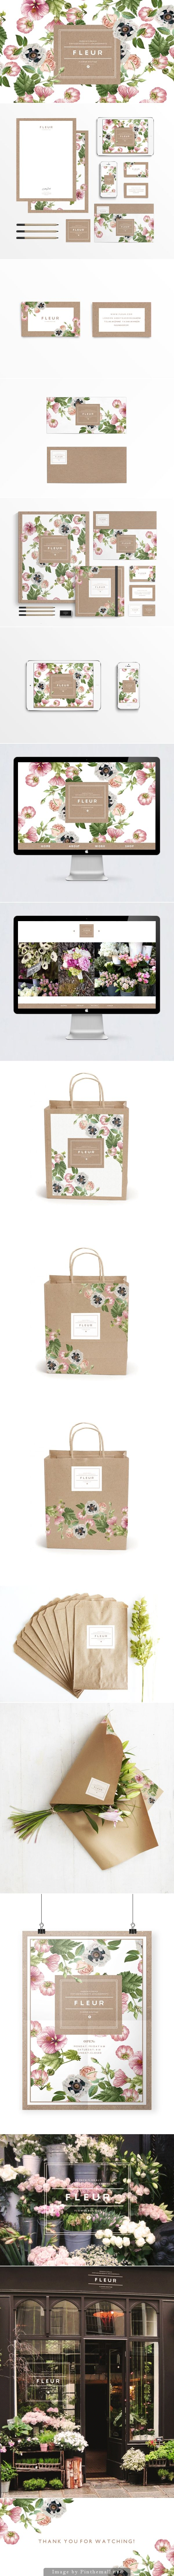 How beautiful is Fleur #identity #packaging